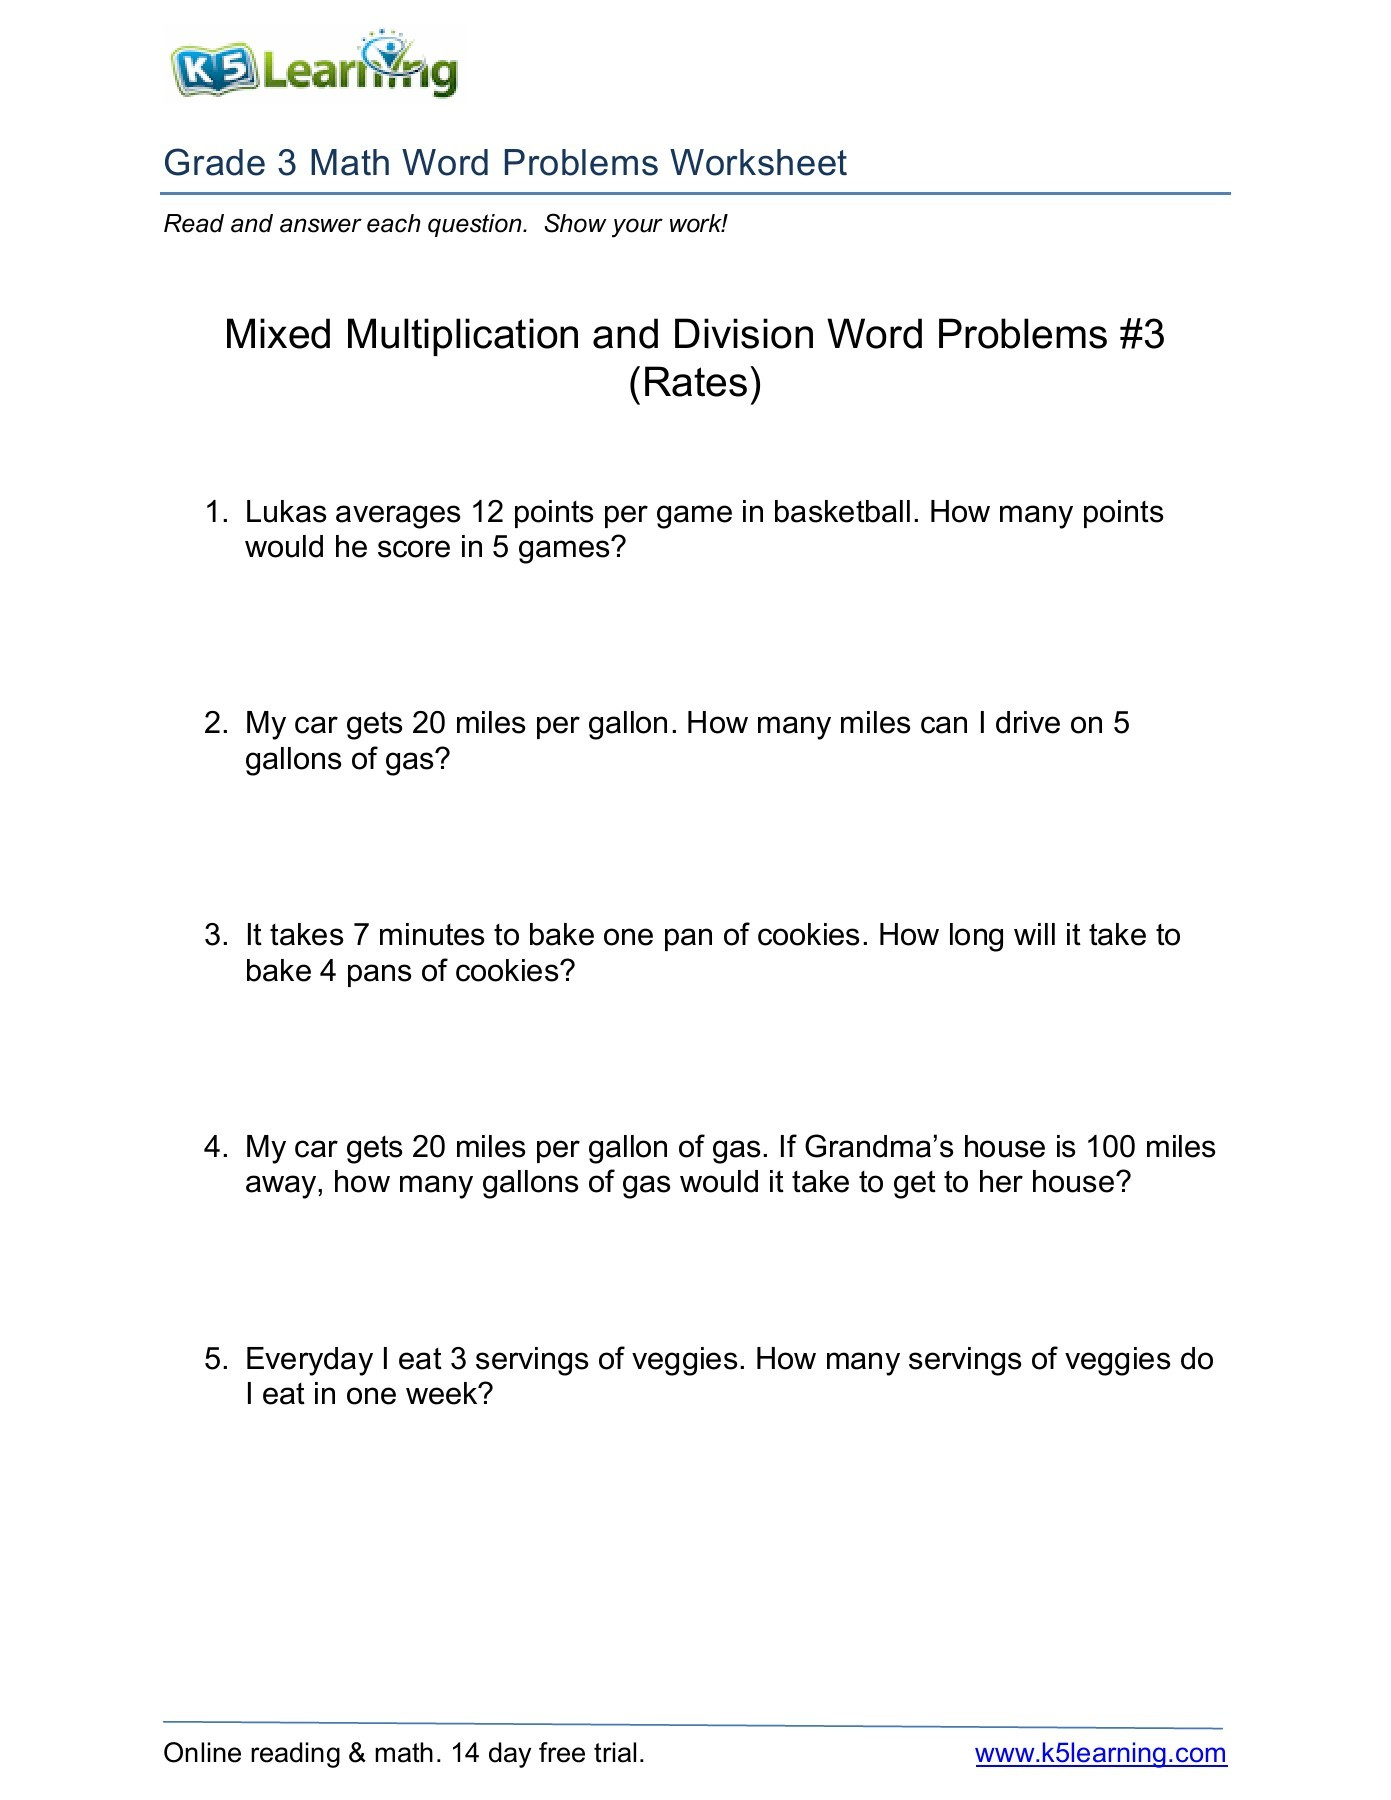 K5 Learning Grade 4 Math Word Problems Worksheet